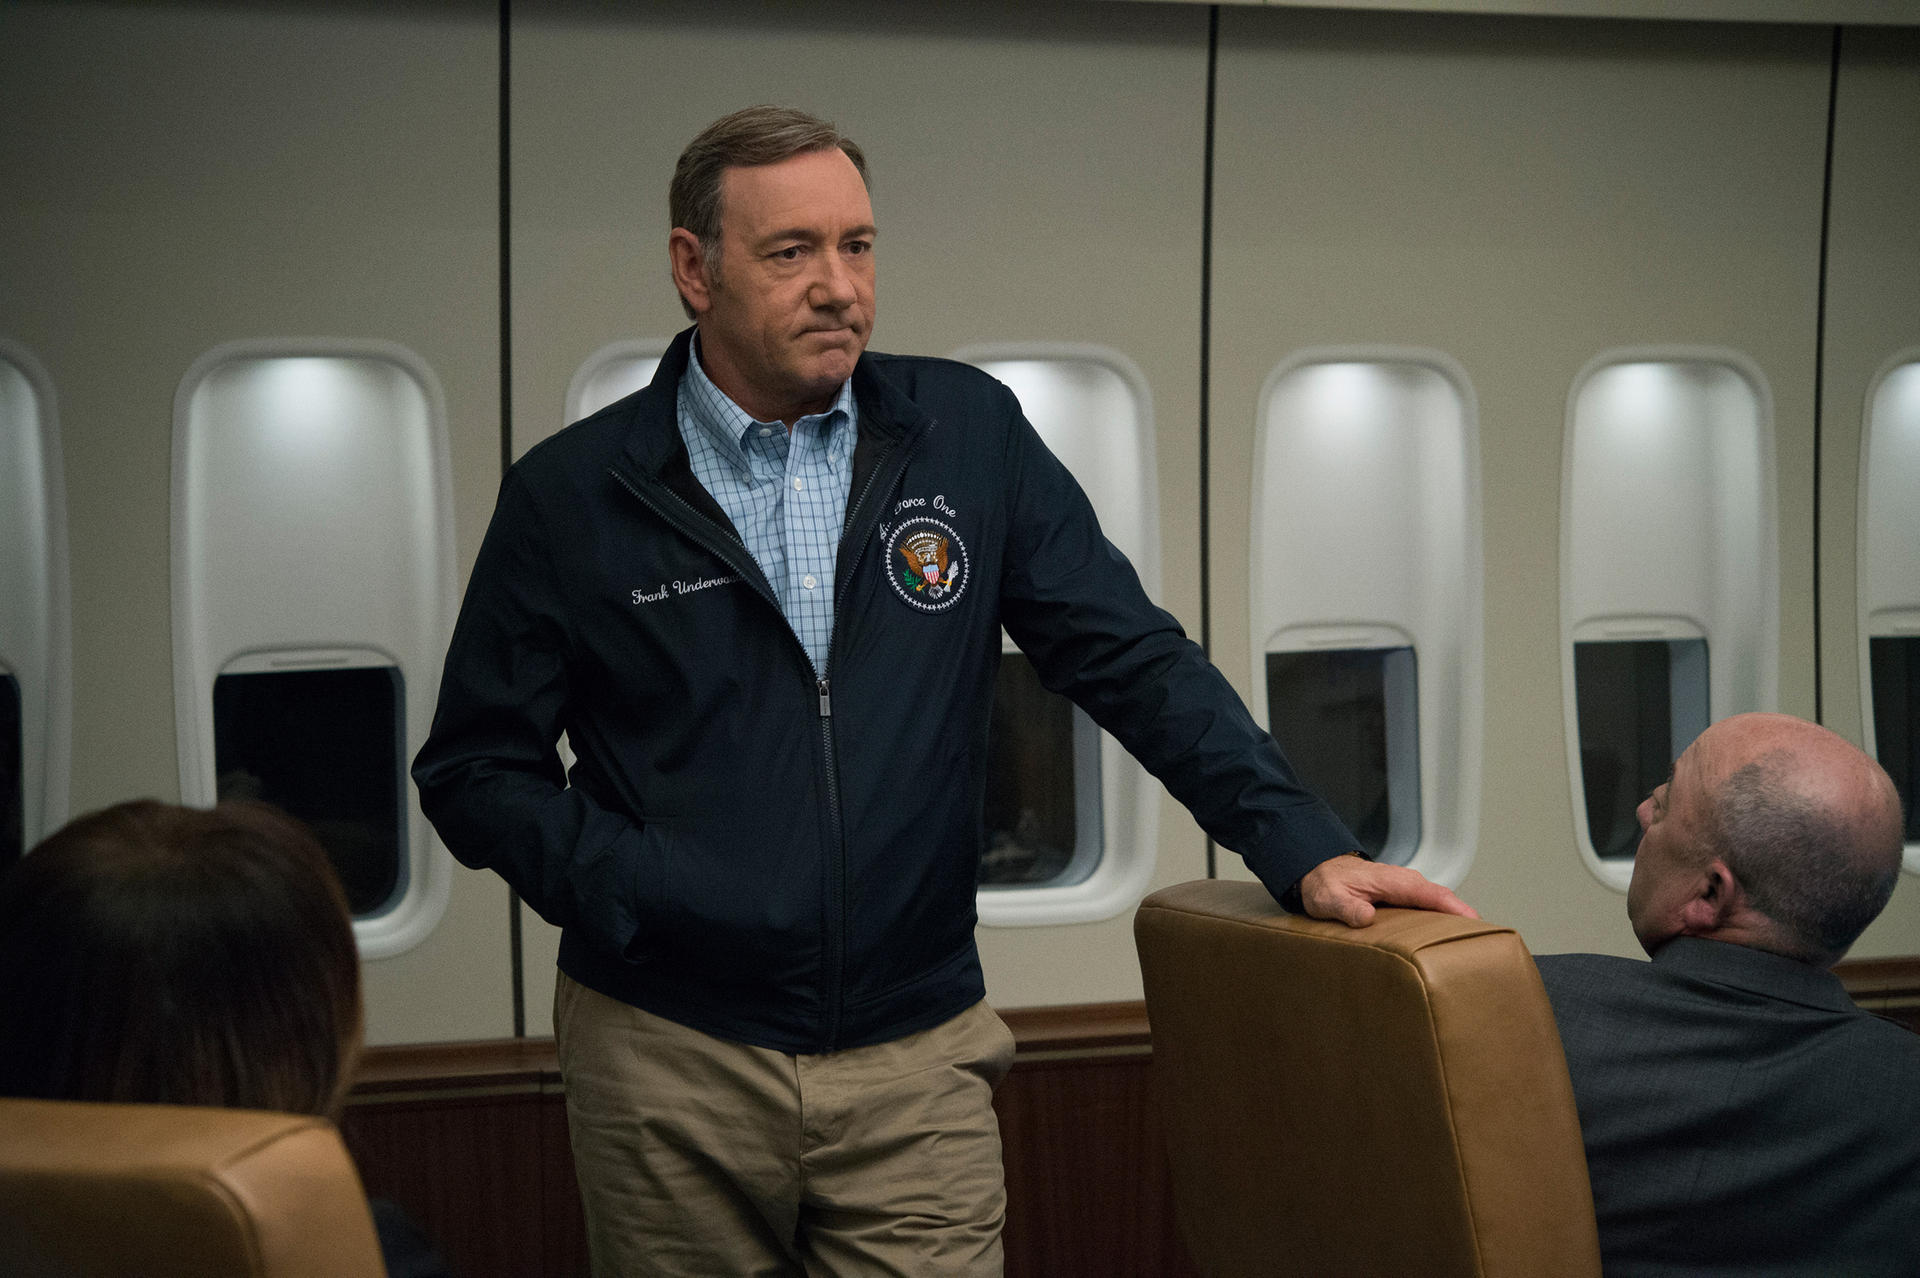 House Of Cards Der Style Von Frank Underwood